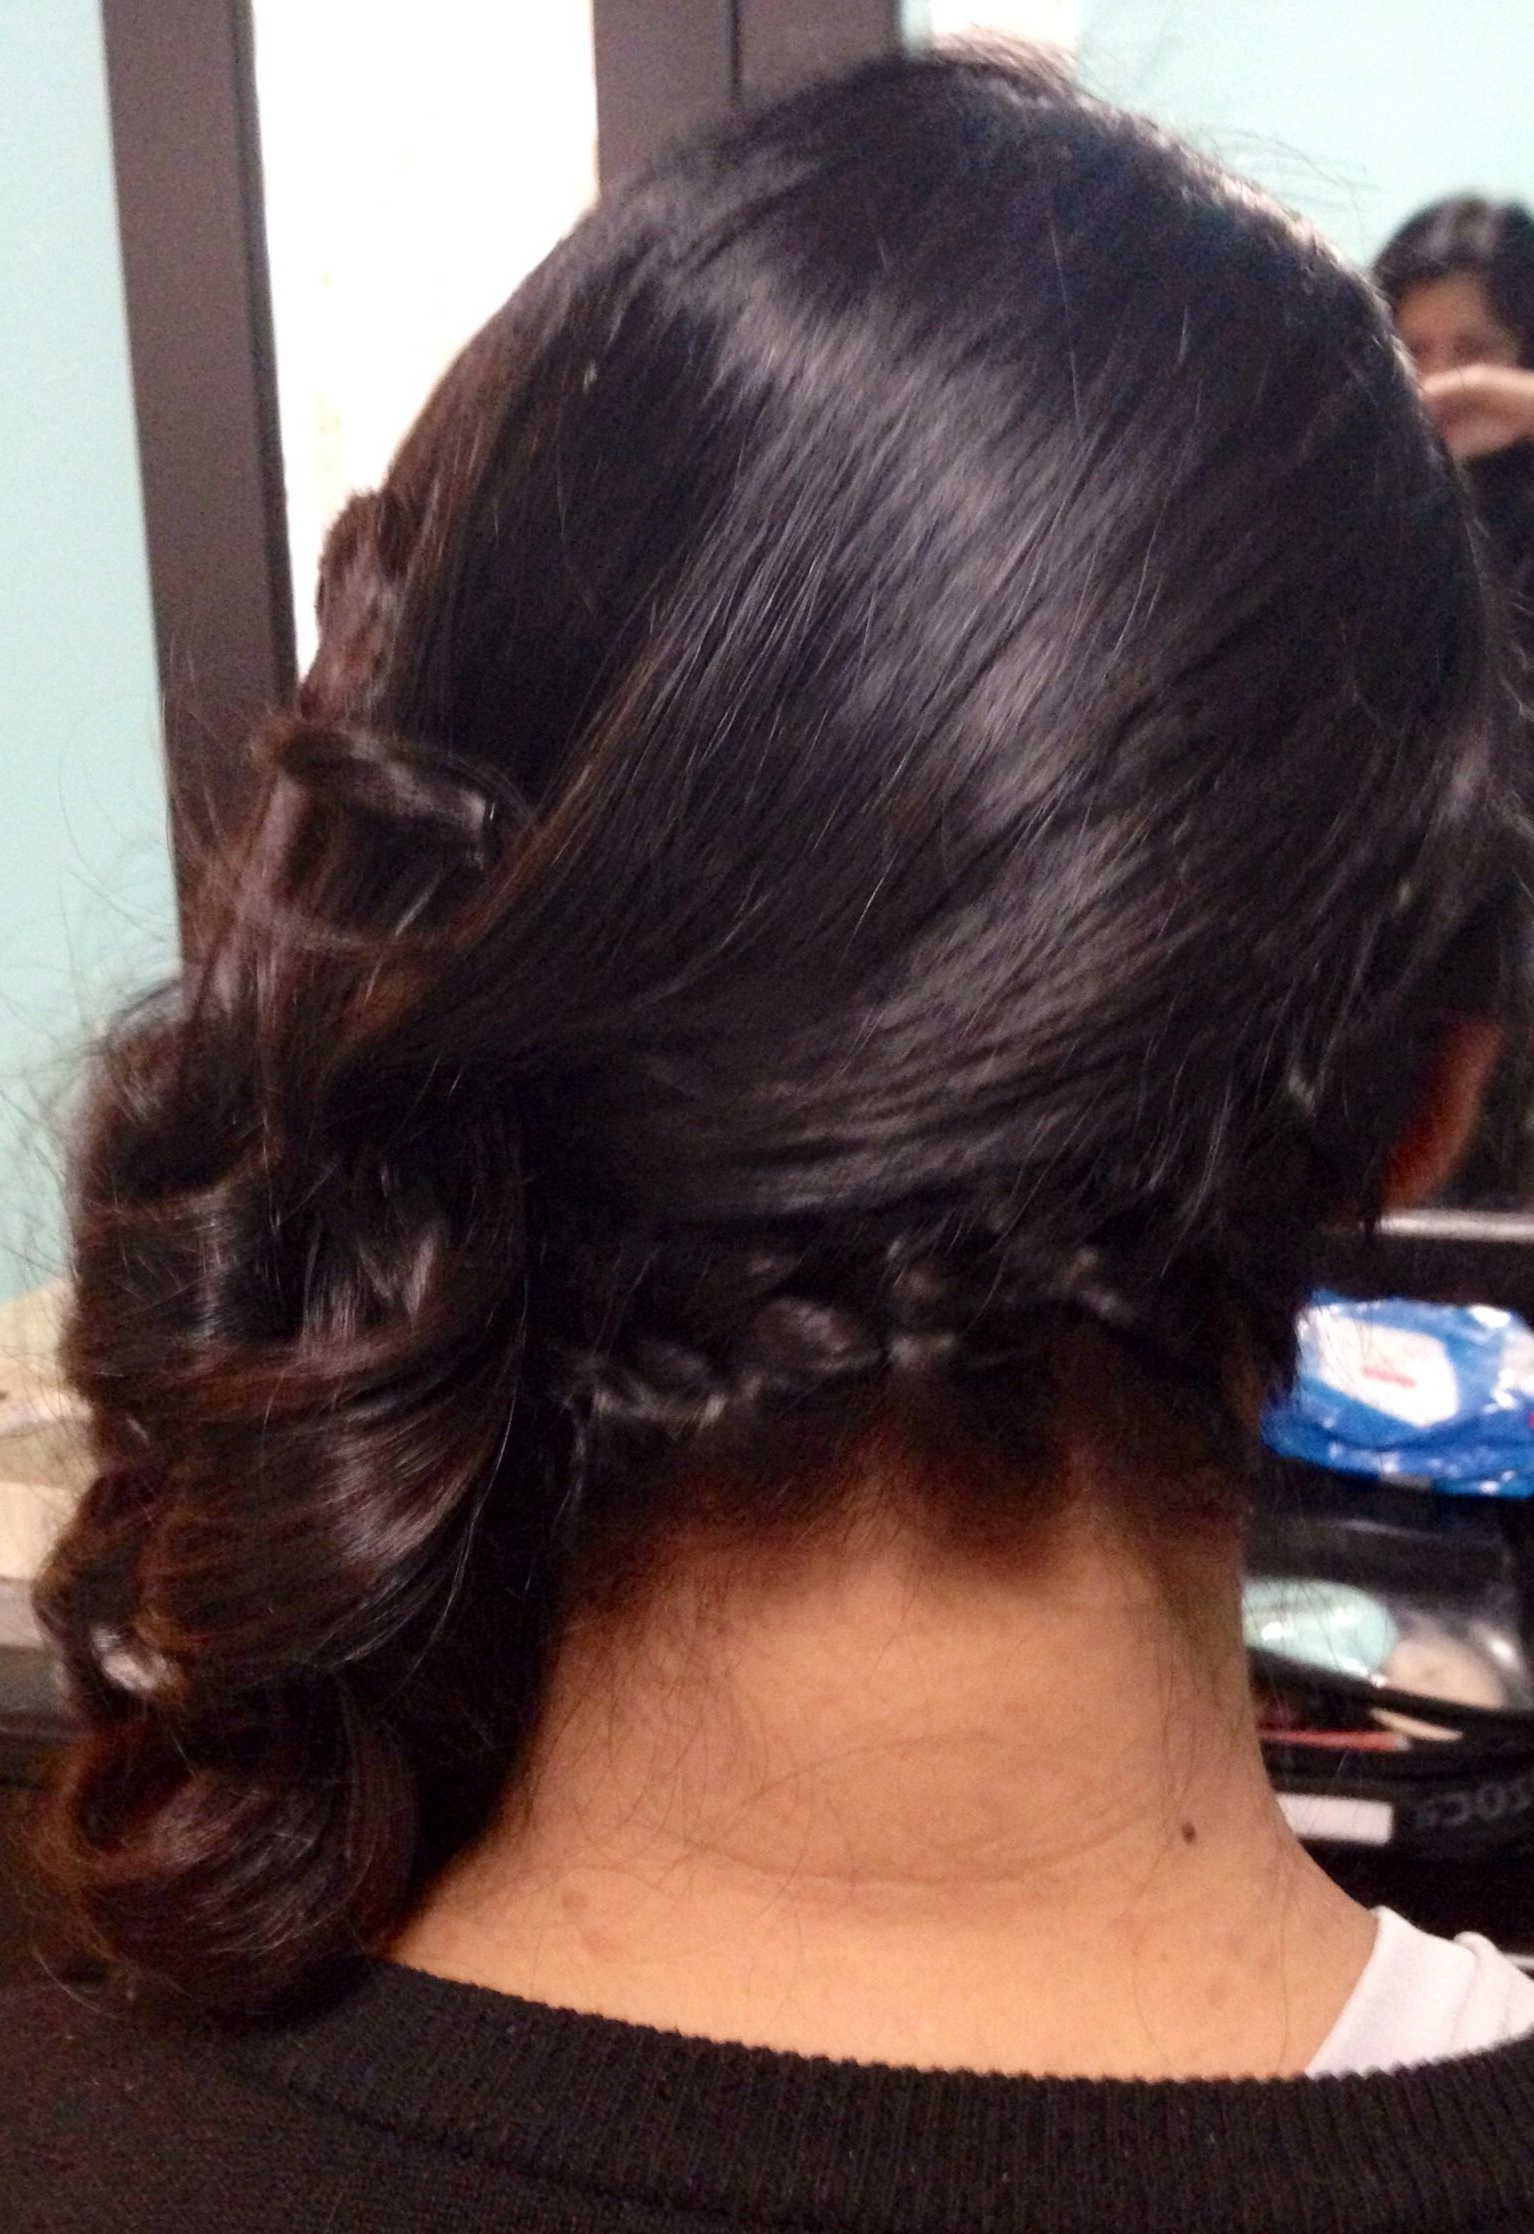 Side French Braid Hairstyle, Side Swept With Curls Wedding Hairstyle Intended For Well Known French Braid Hairstyles With Curls (View 12 of 15)